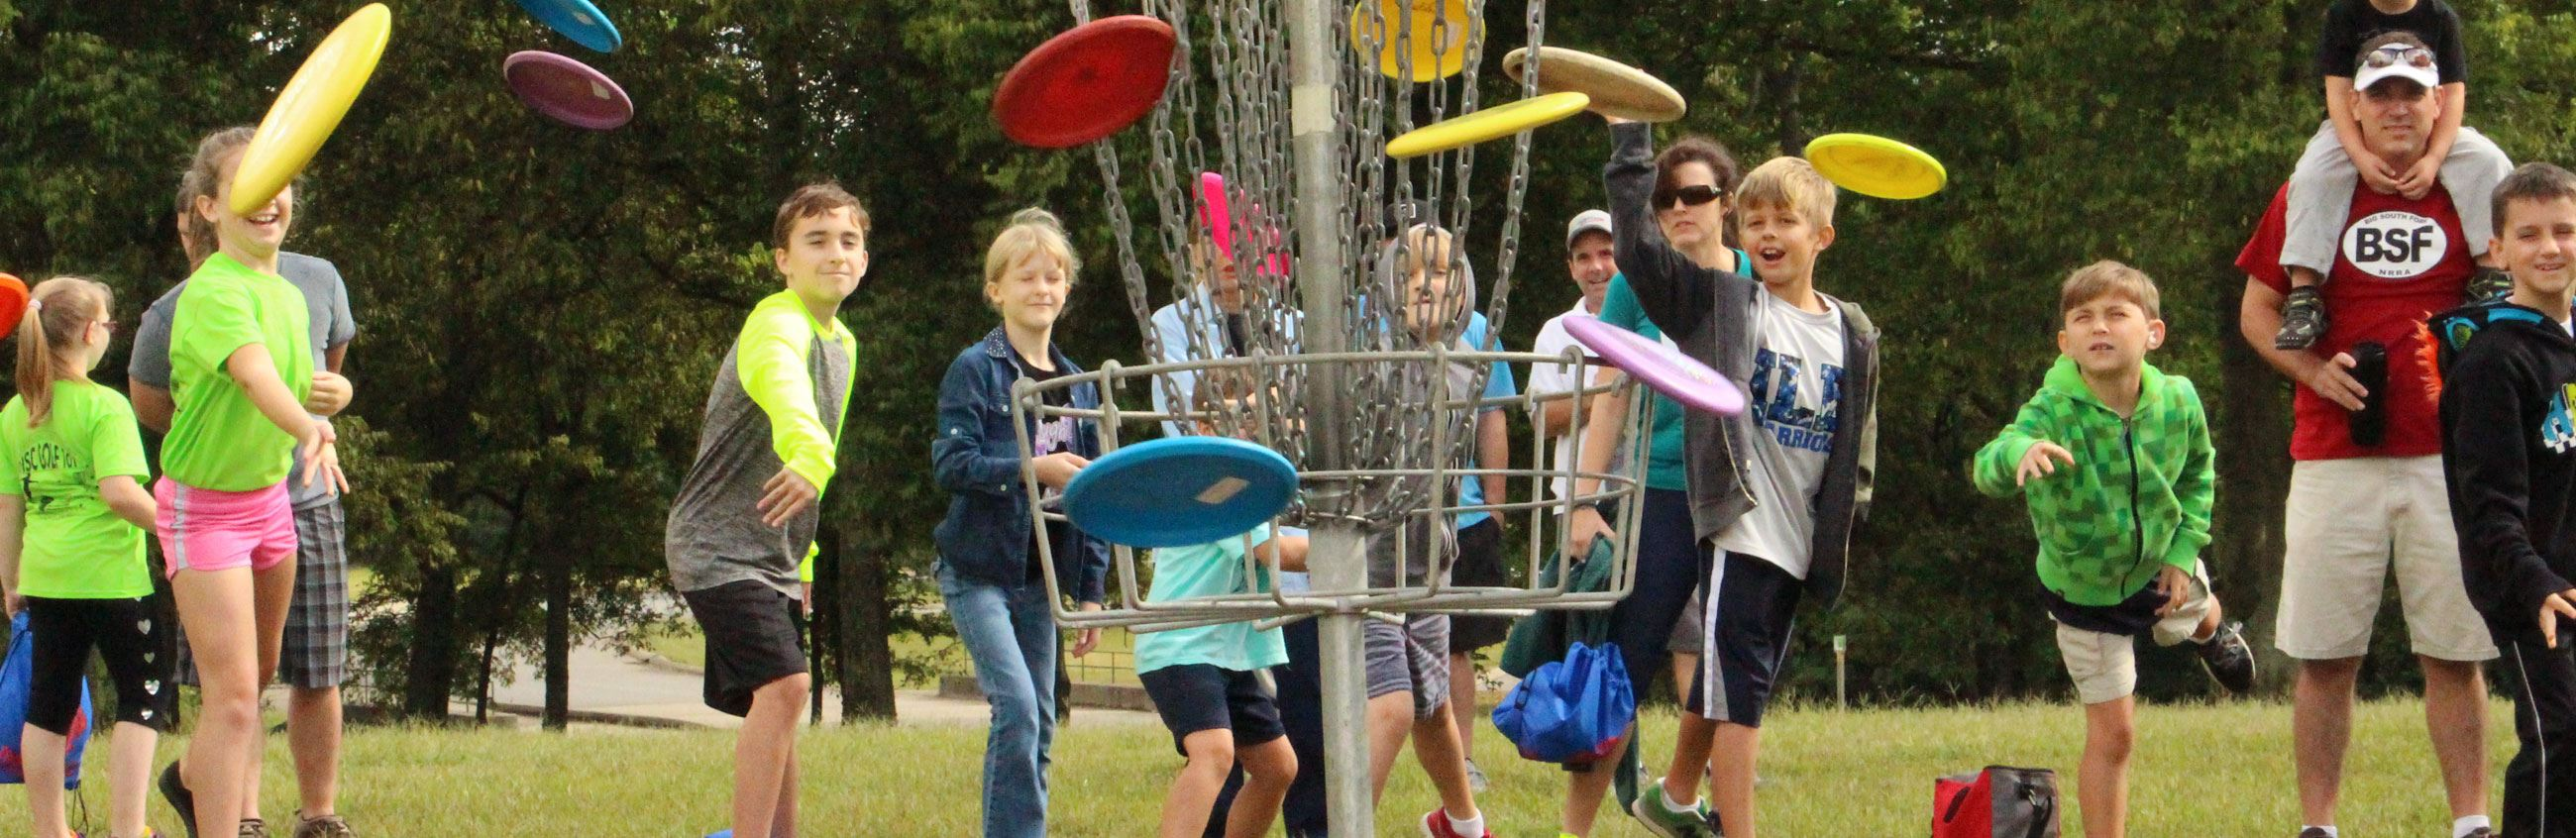 Multiple kids shooting frisbee golf